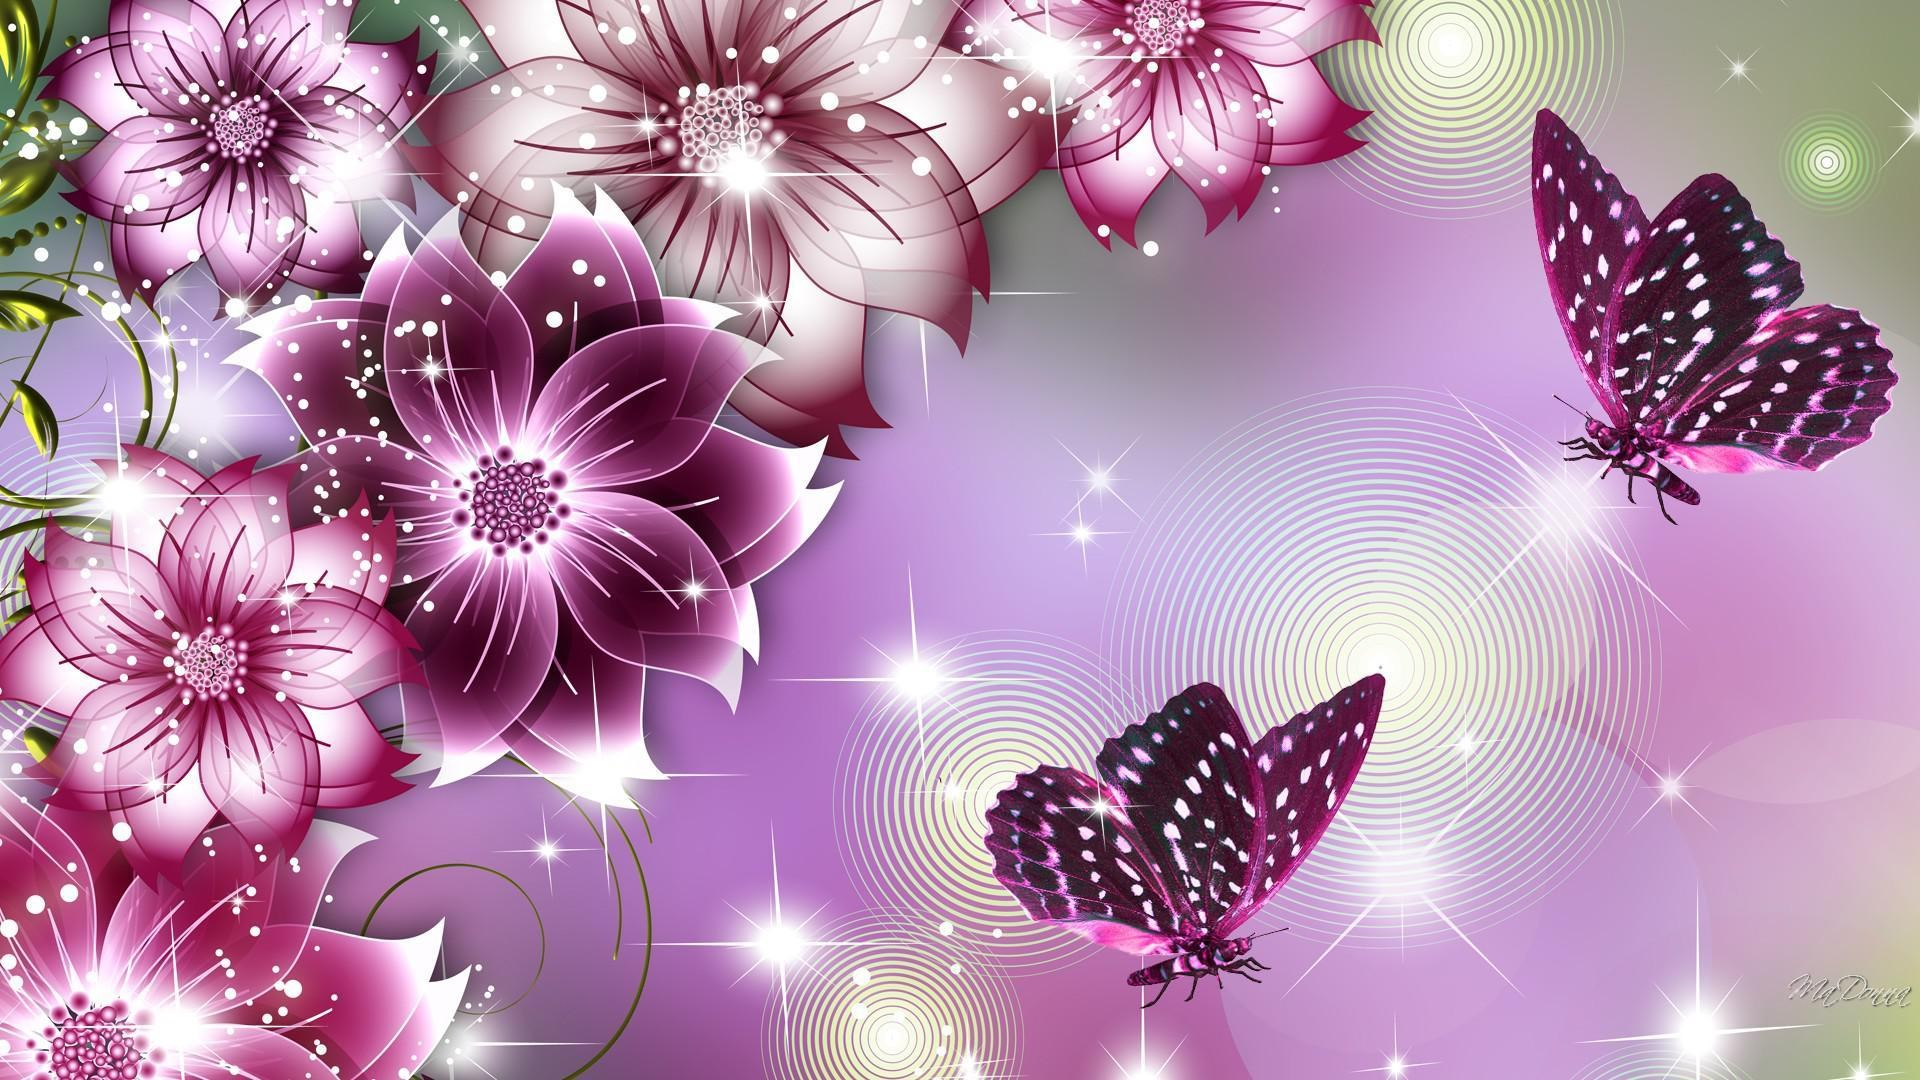 butterfly-backround-images-walls-pics-butterfly-category-wallpaper-wp3403570